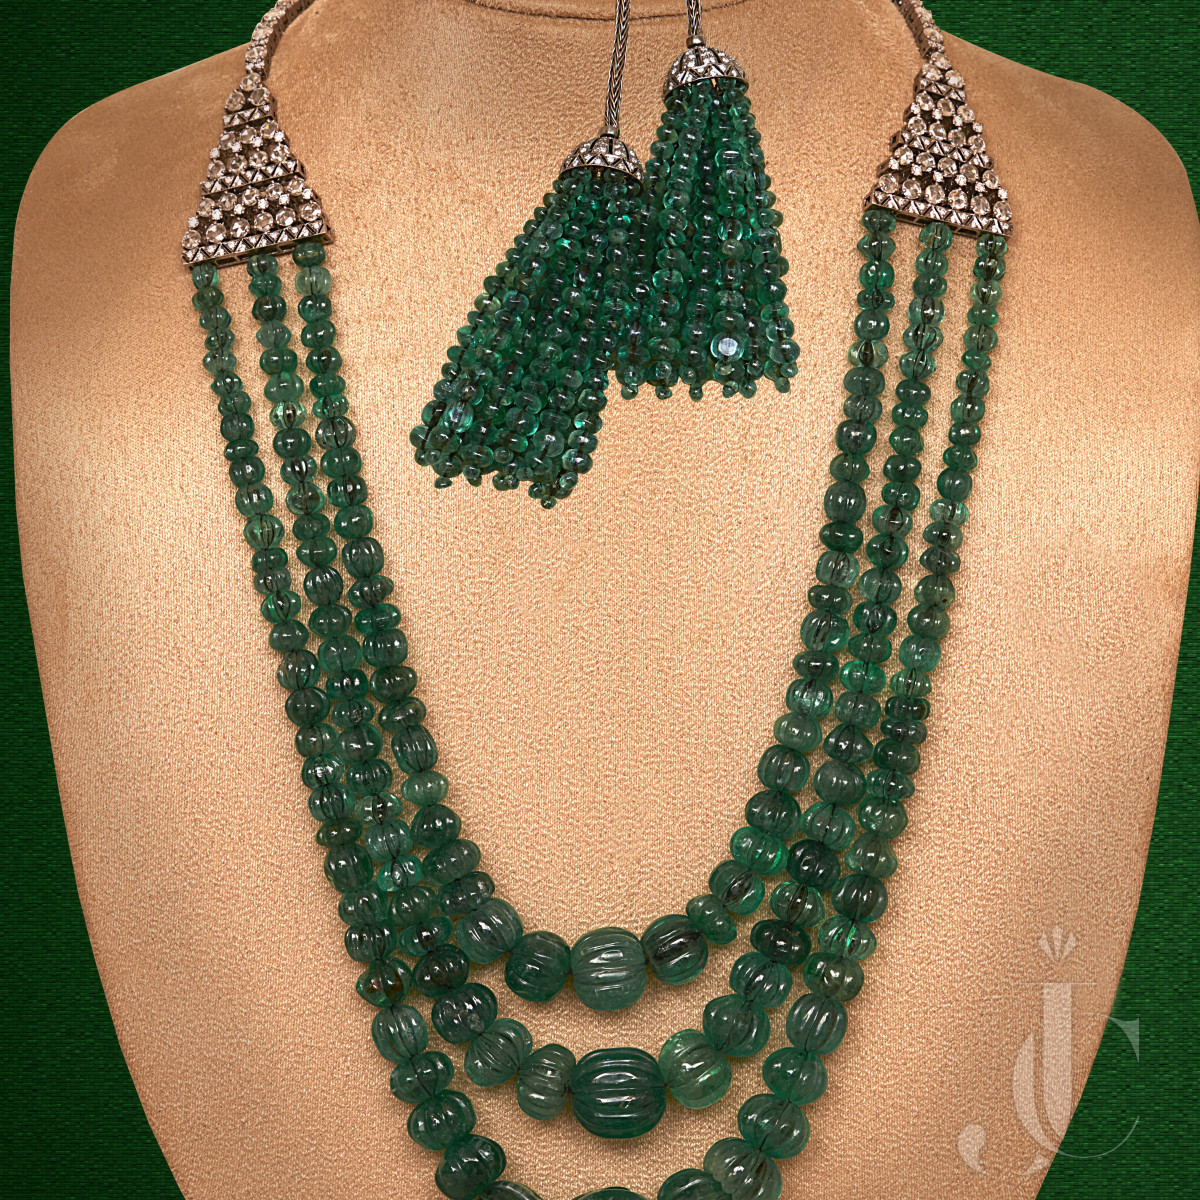 Natural Emerald Carving Beads Three Line Necklace with Diamond Back Clip with Tassle